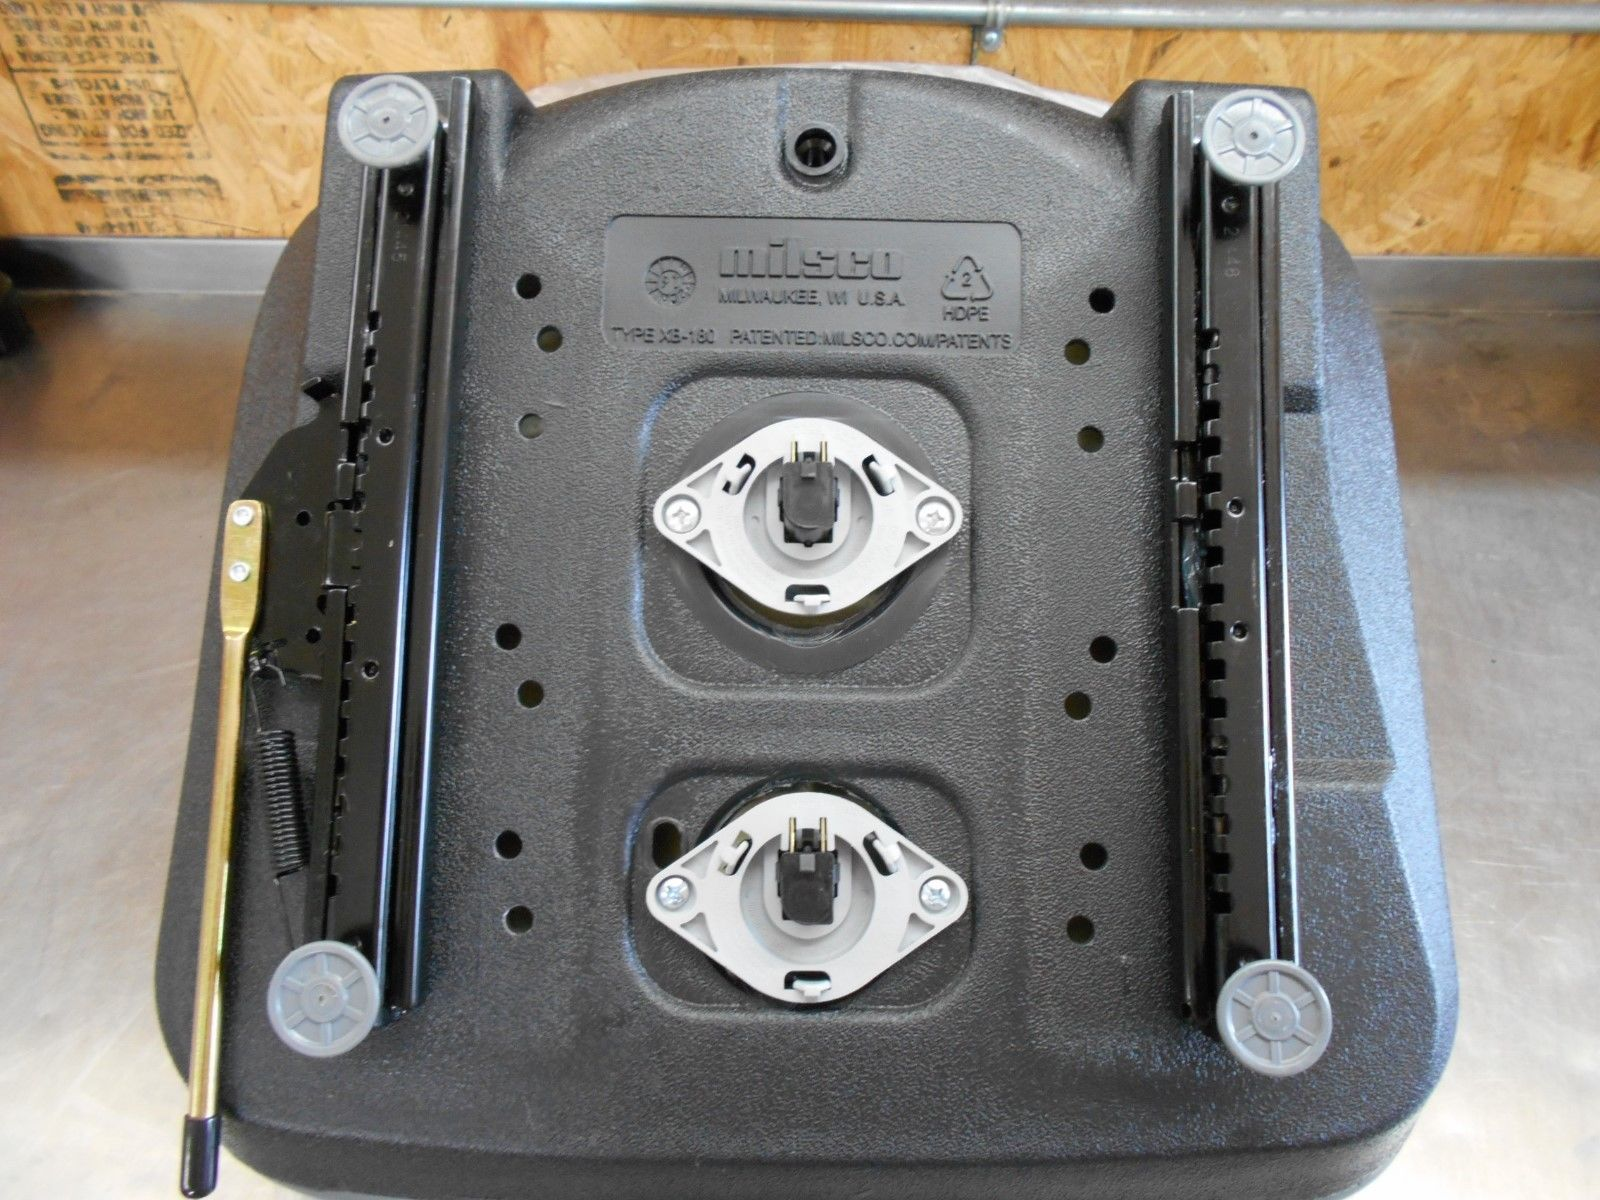 BLACK SEAT FORD NEW HOLLAND SKID STEER, COMES WITH TWO SEAT SWITCHES  INSTALLED, FITS LX465, LX485, LX565, LX665, LX865 #QJ